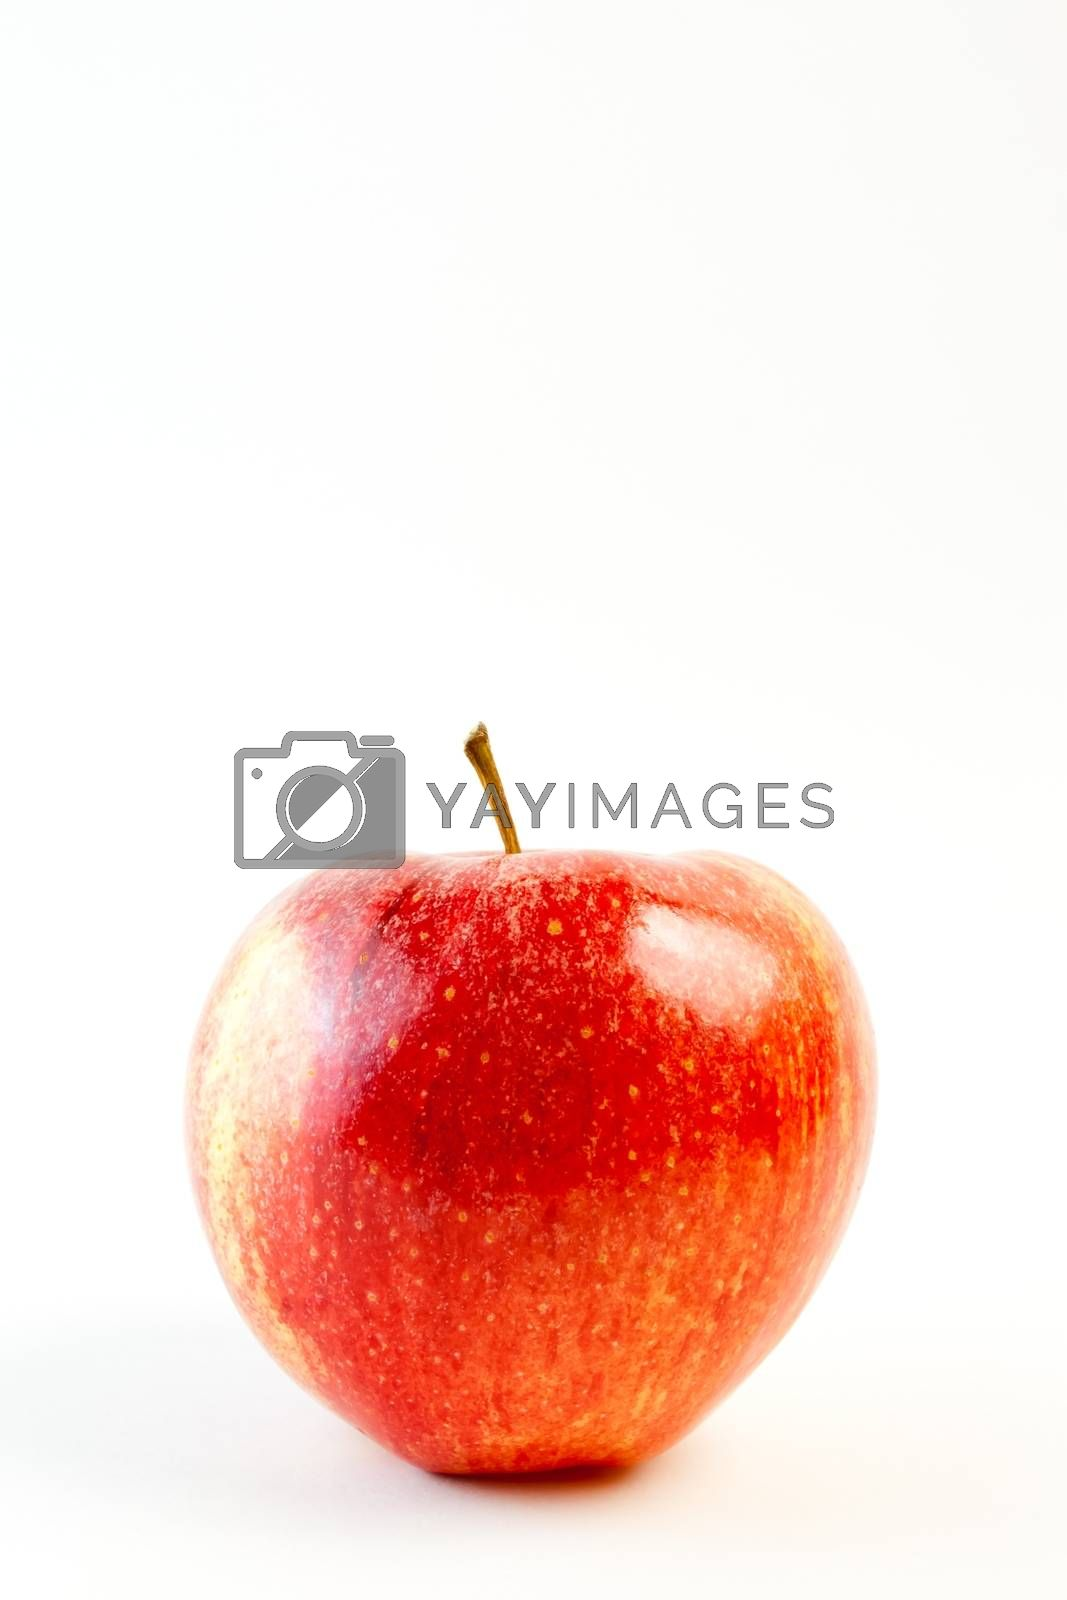 detail of red apple on white background